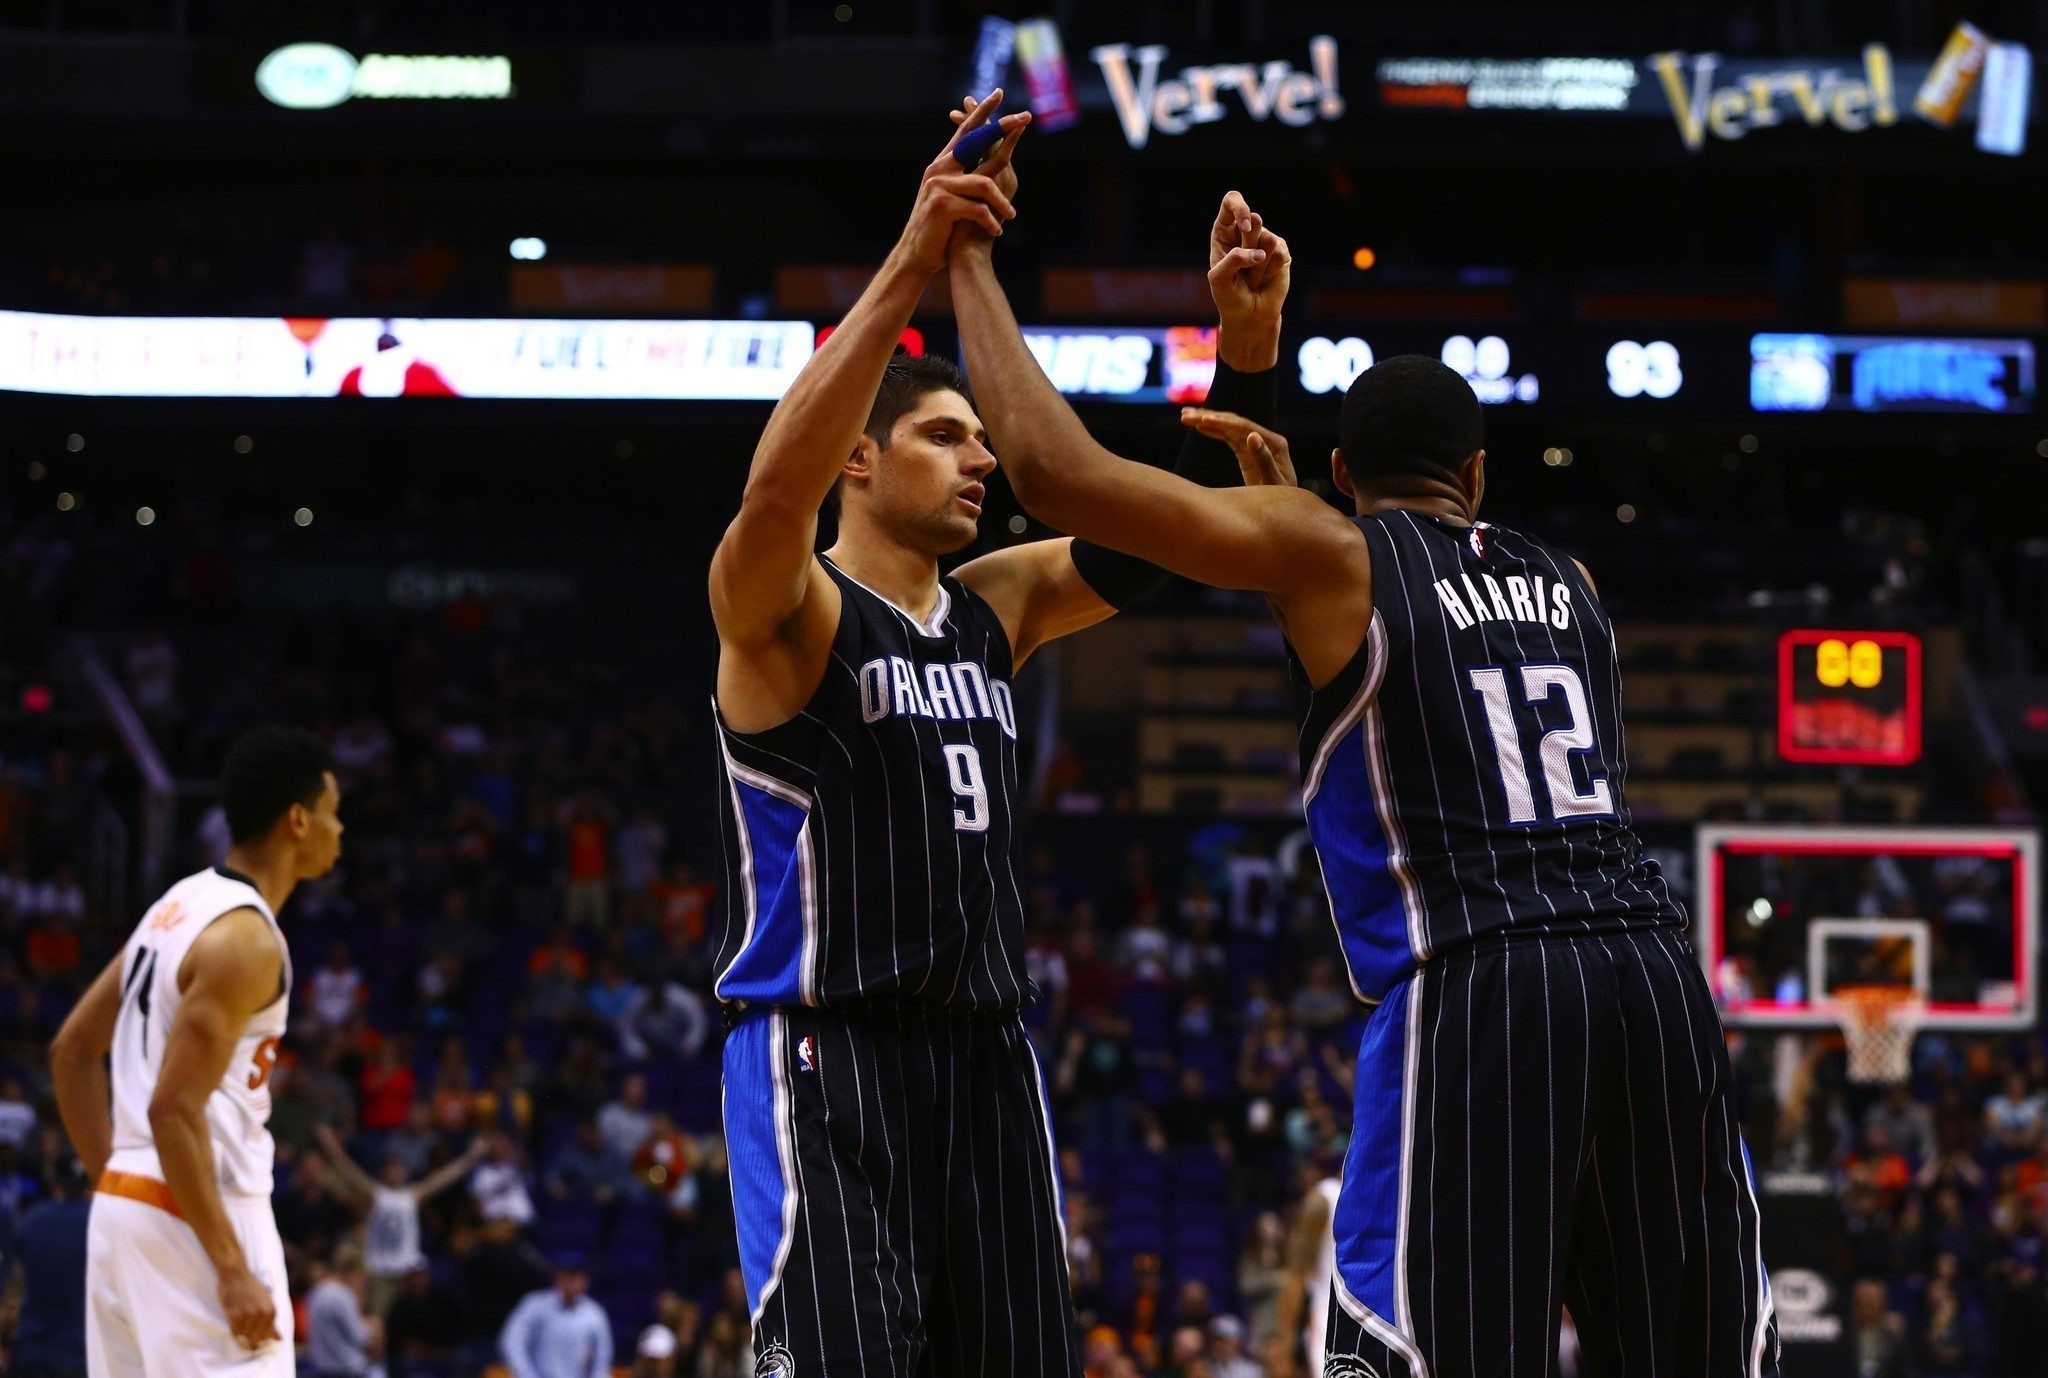 0598f3a25f9a Orlando Magic will open the post-All-Star portion of their schedule against  the New Orleans Pelicans - Orlando Sentinel